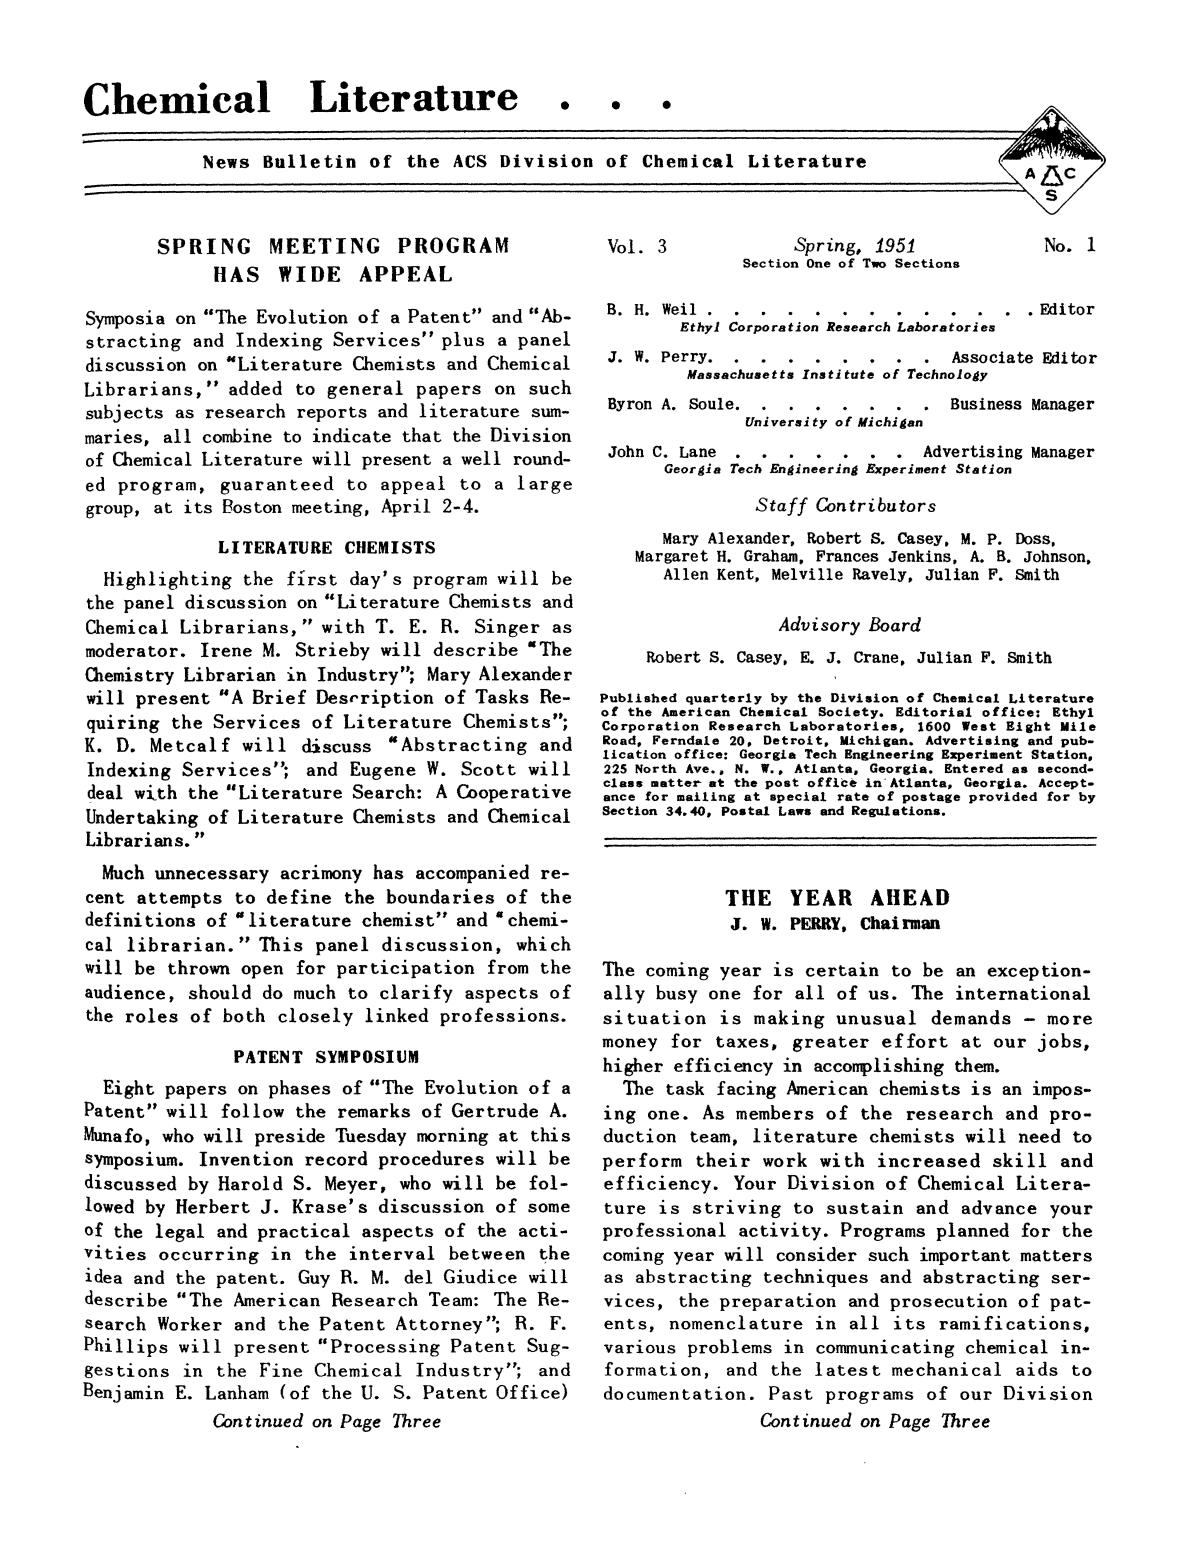 Chemical Literature, Volume 3, Number 1, Spring 1951                                                                                                      1